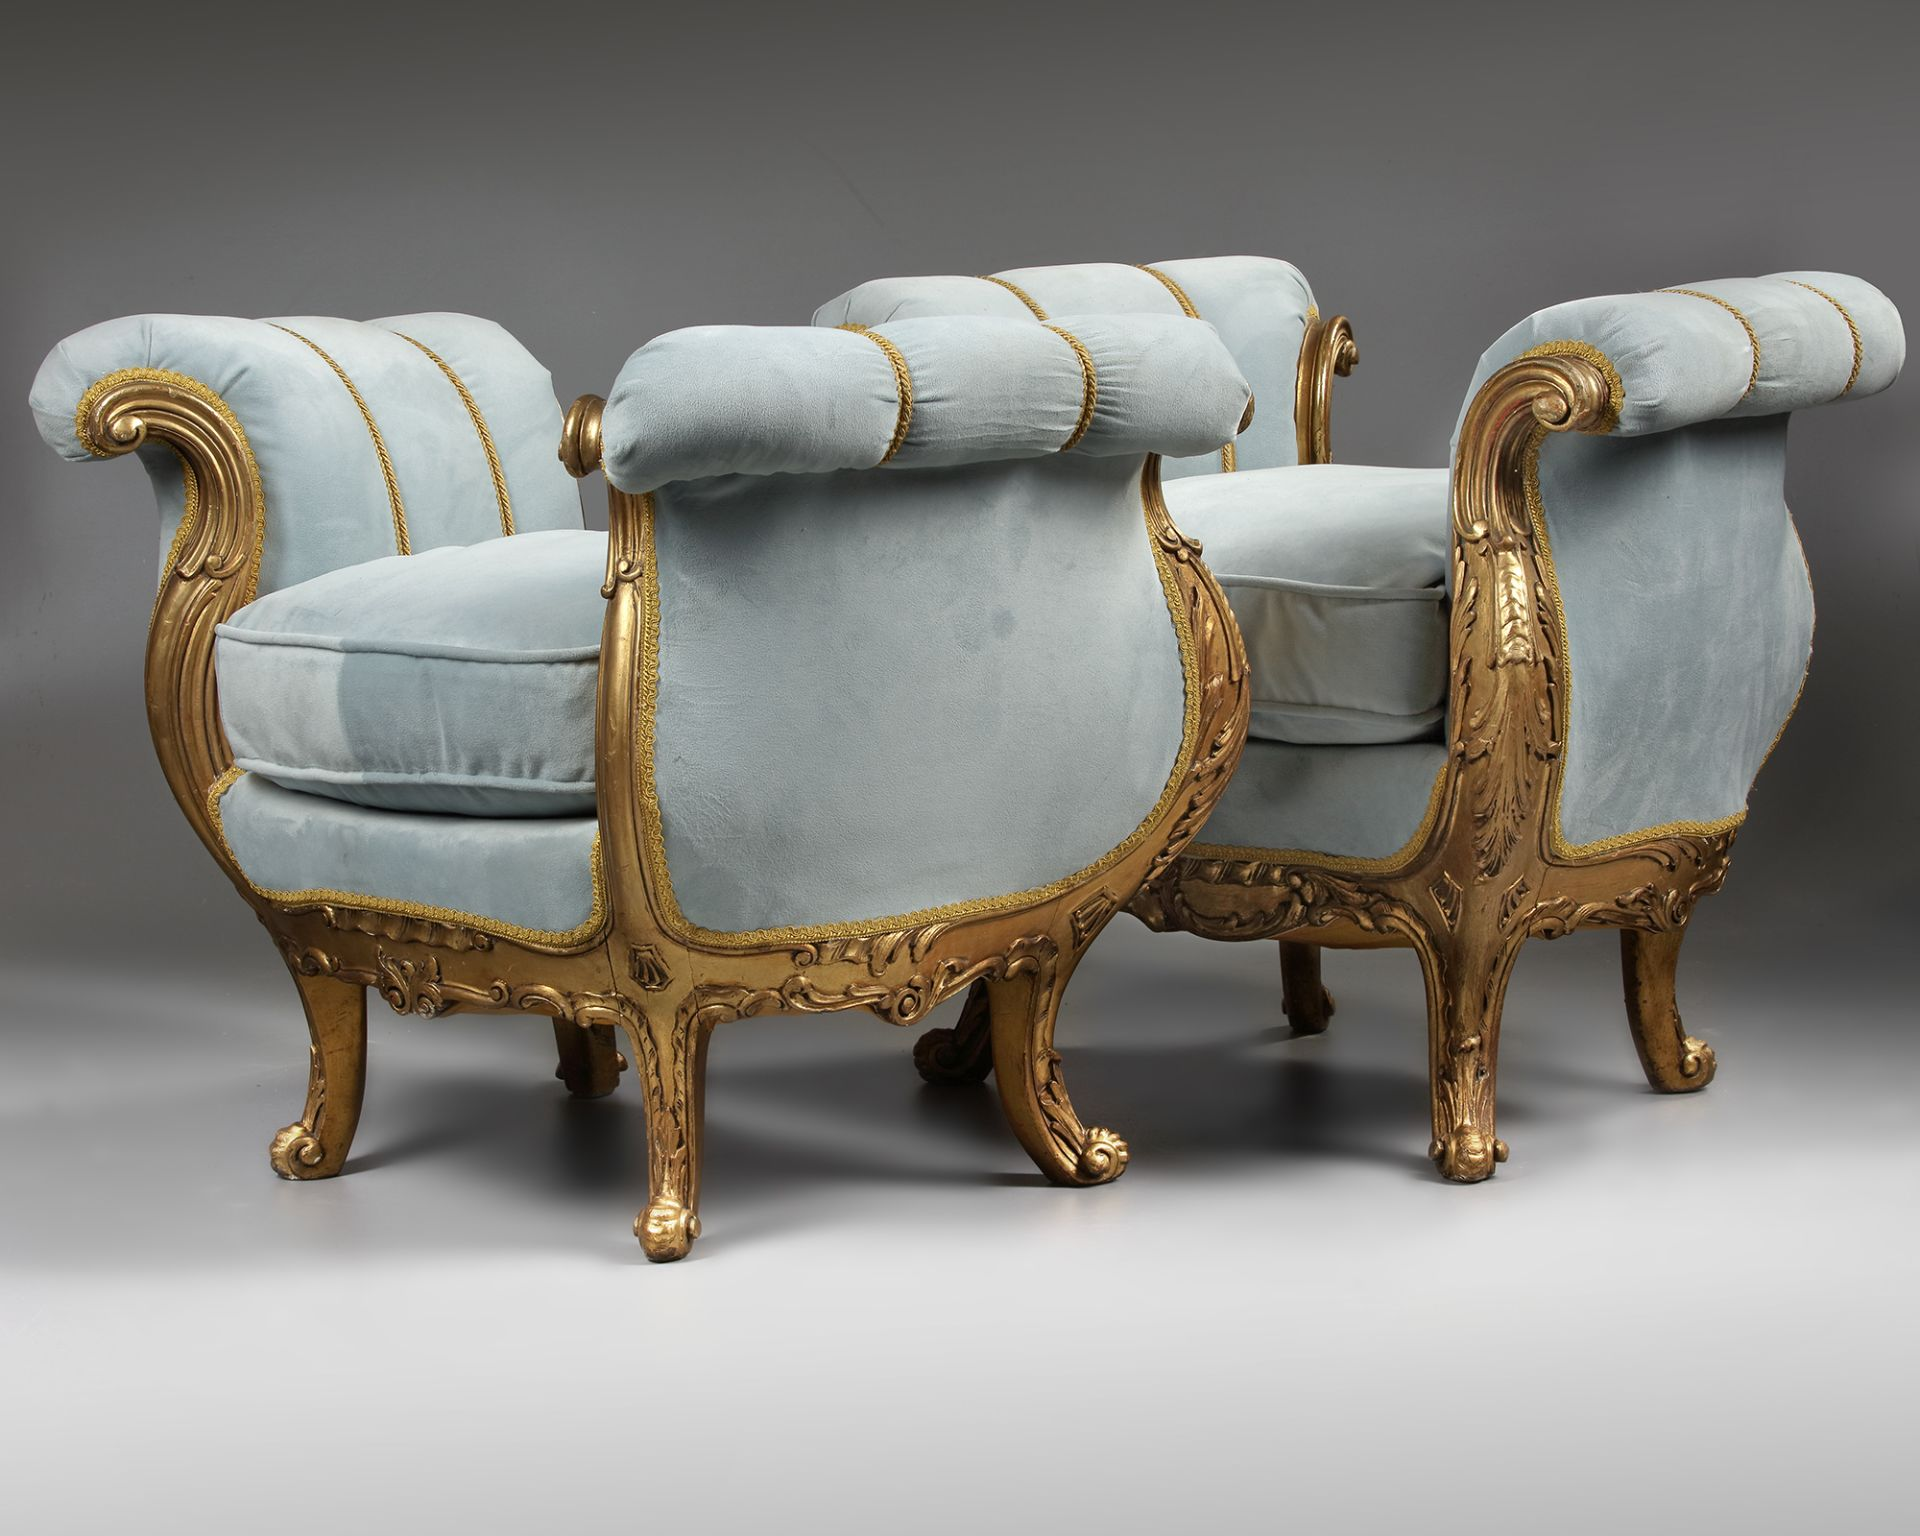 A PAIR OF FRENCH LOUIS XV STYLE GILT WOOD POUFS, LATE 19TH CENTURY - Image 2 of 5